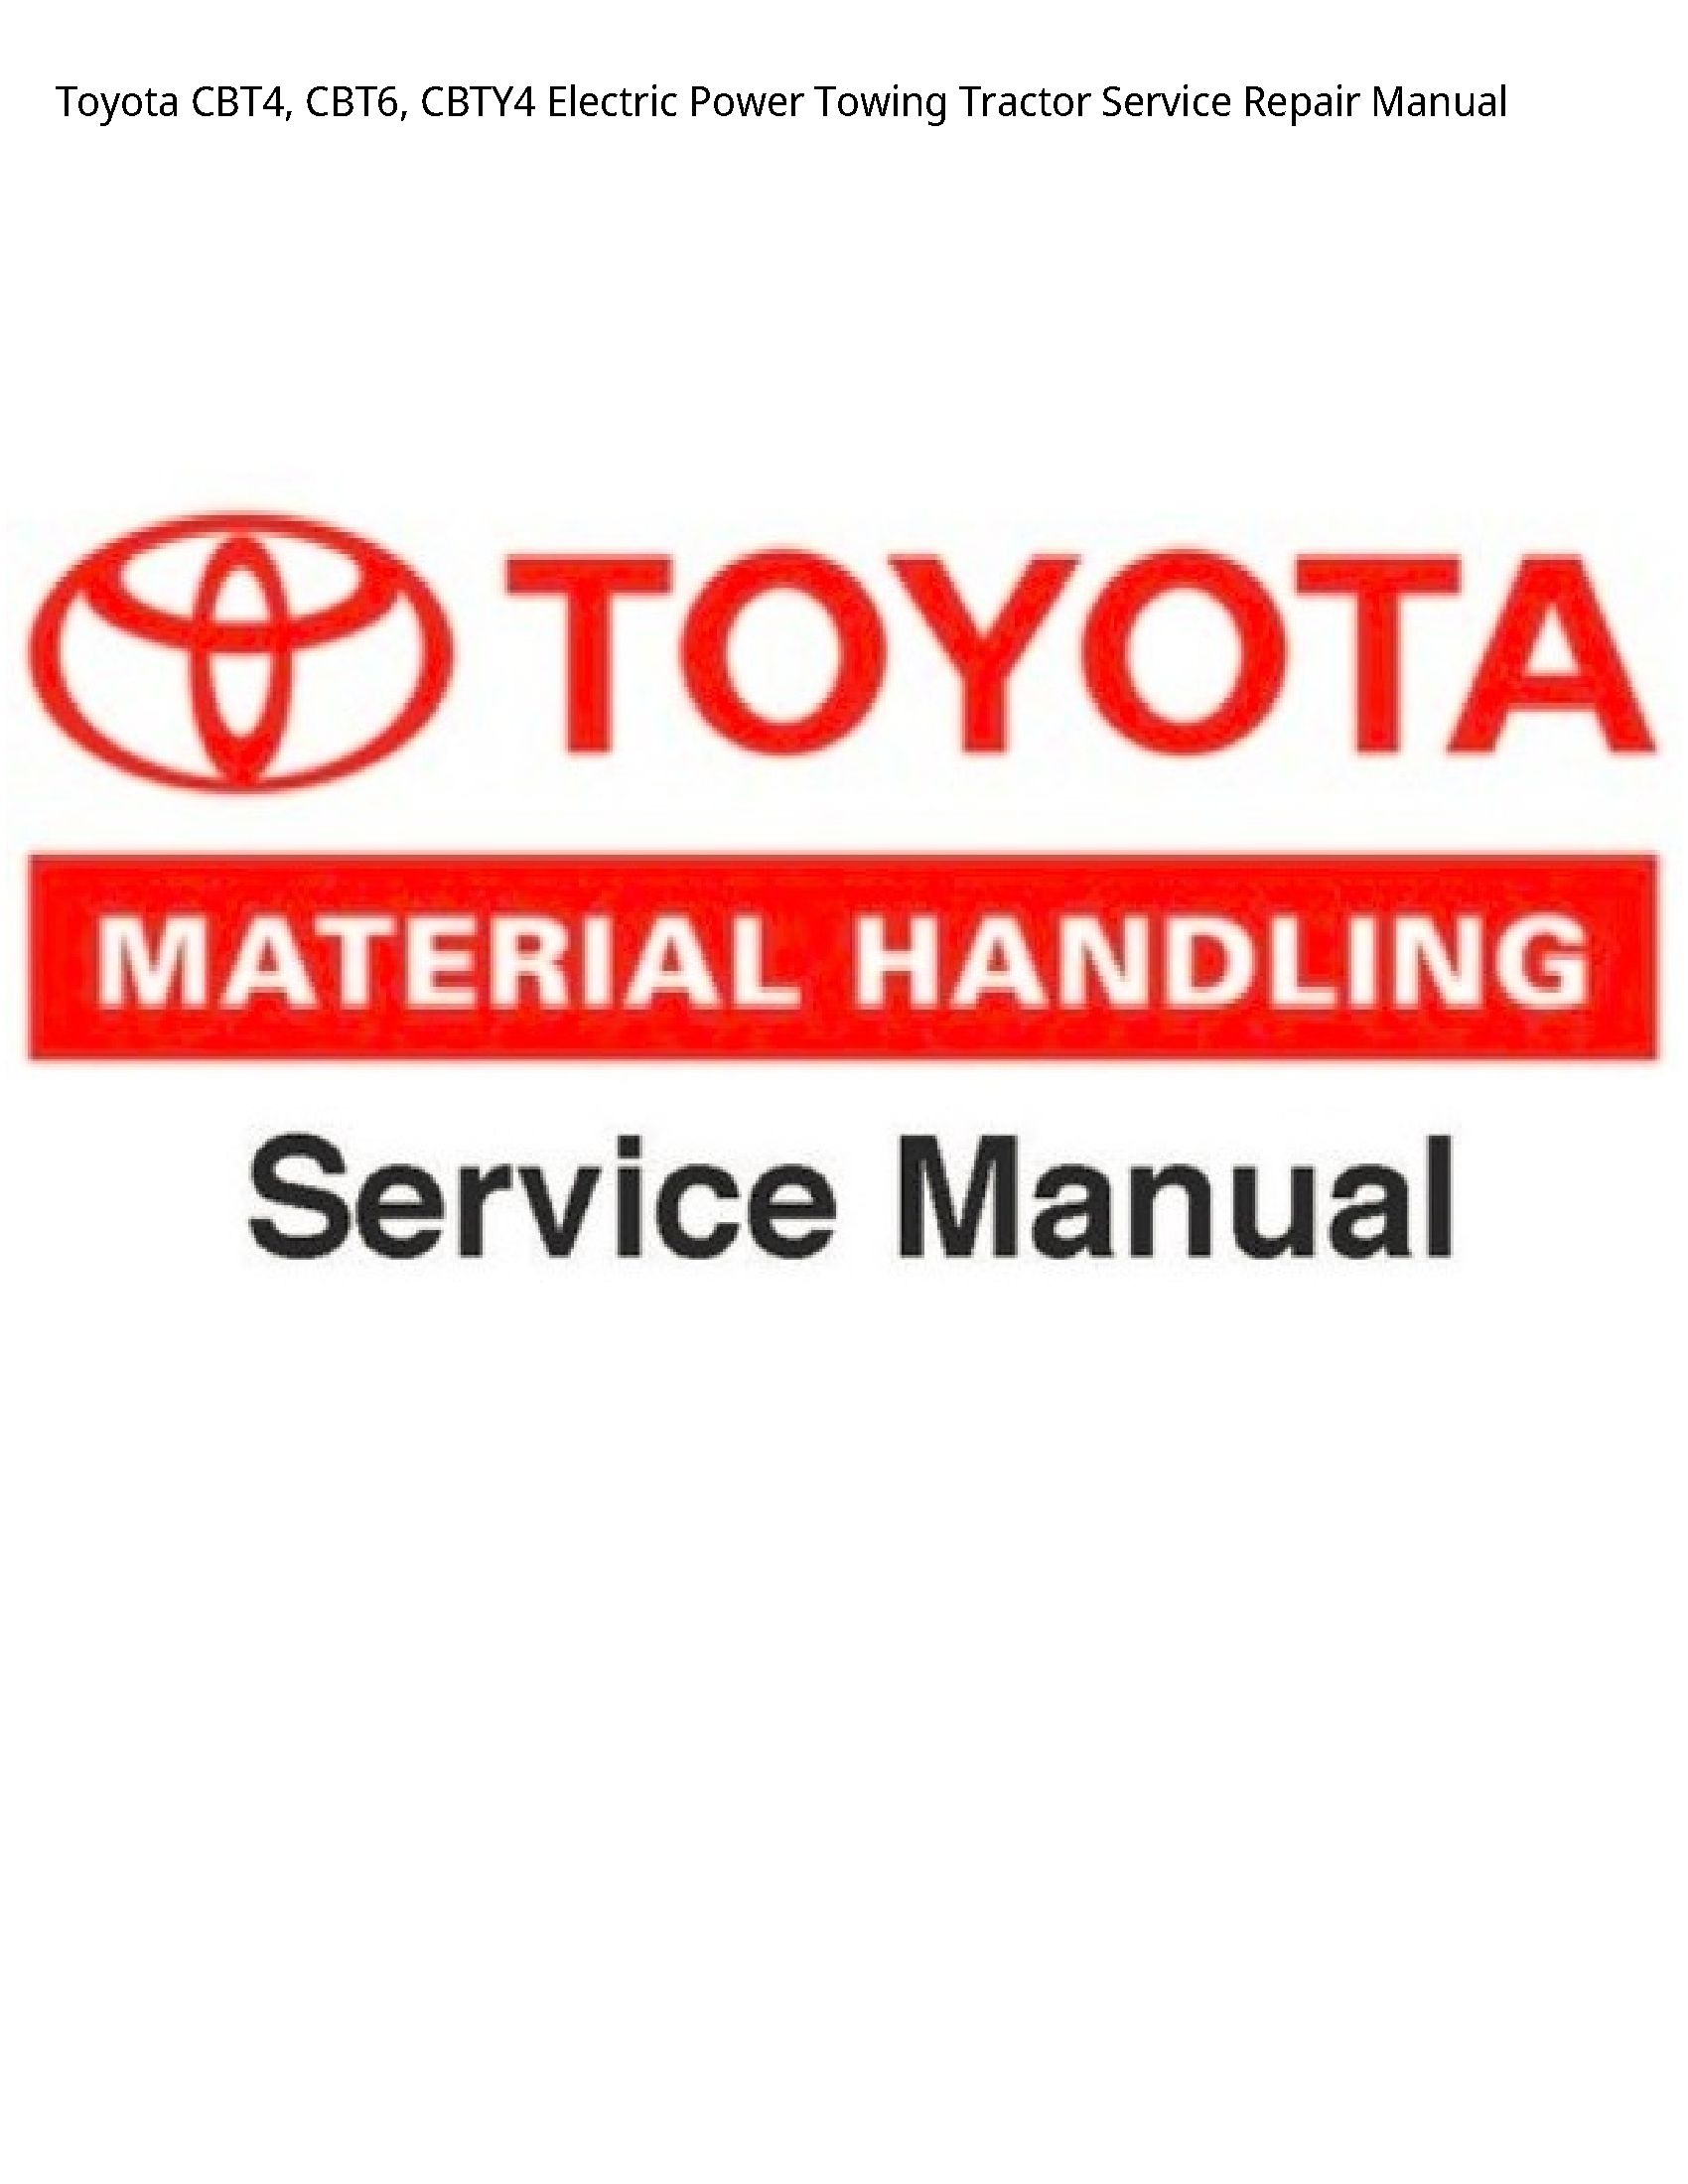 Toyota CBT4 Electric Power Towing Tractor manual